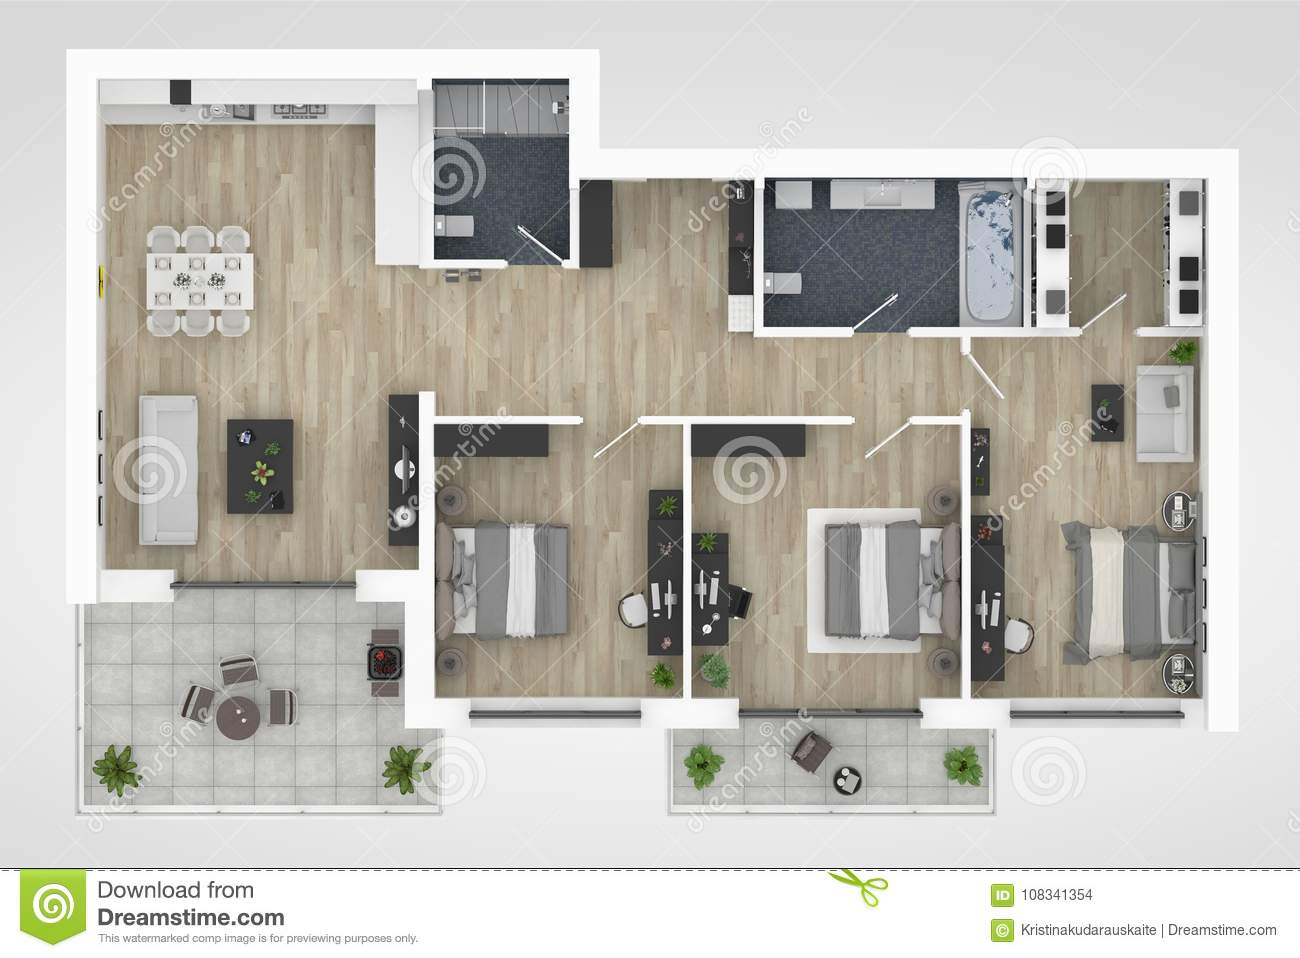 Floor Plan Of A House Top View 3d Illustration Open Concept Living Apartment Layout Stock Illustration Illustration Of Background Hotel 108341354